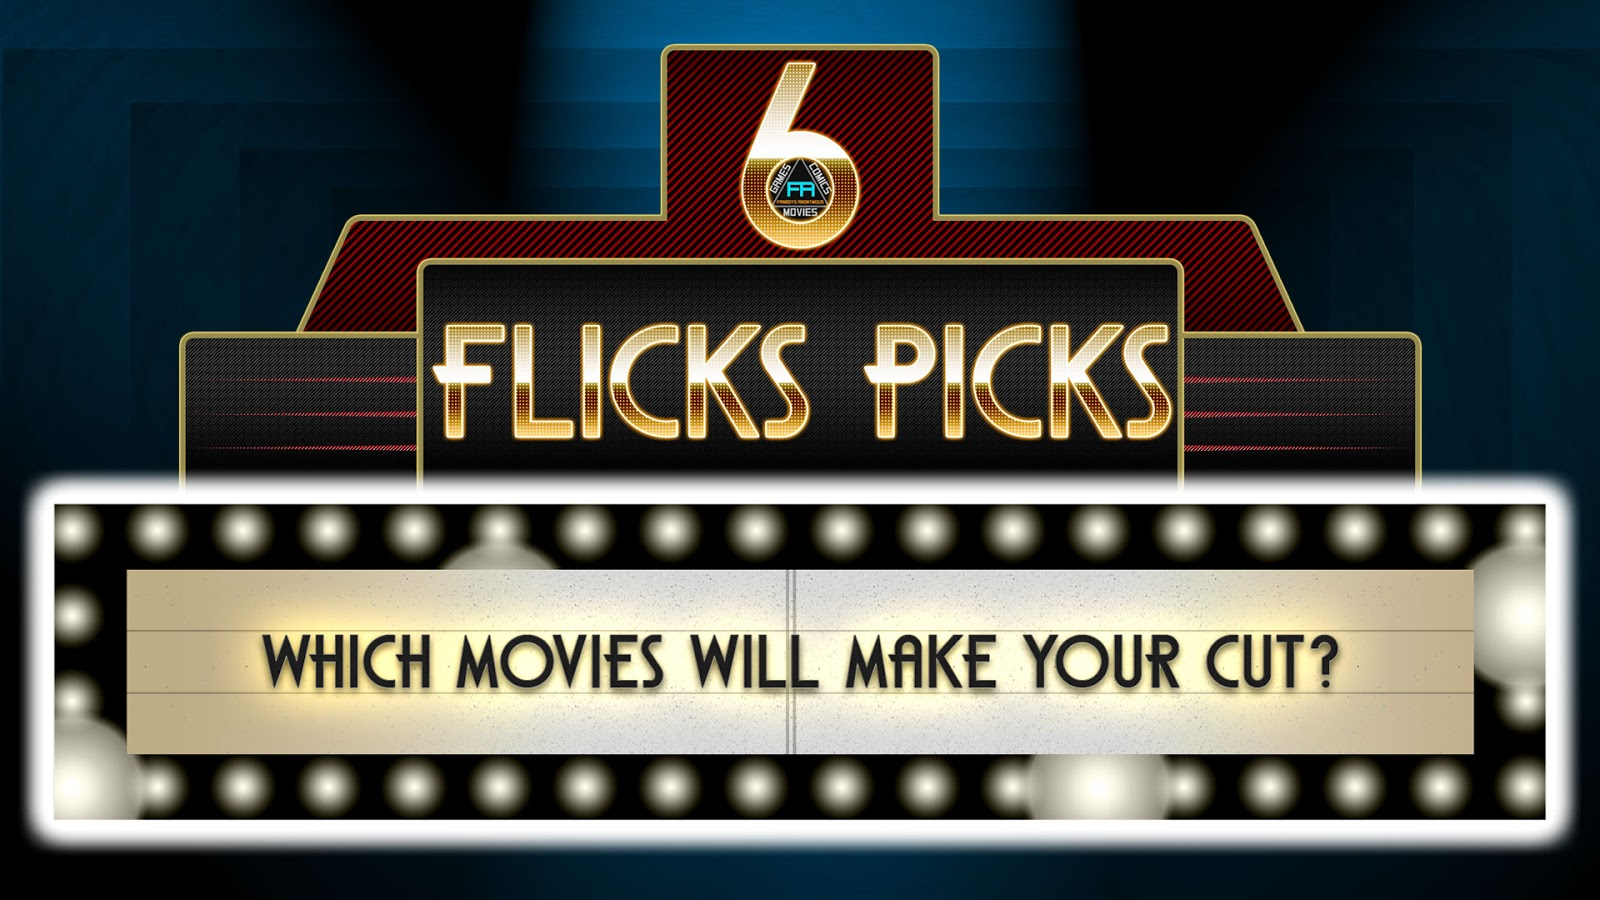 What movies are coming out August 2019 6 Flicks Picks